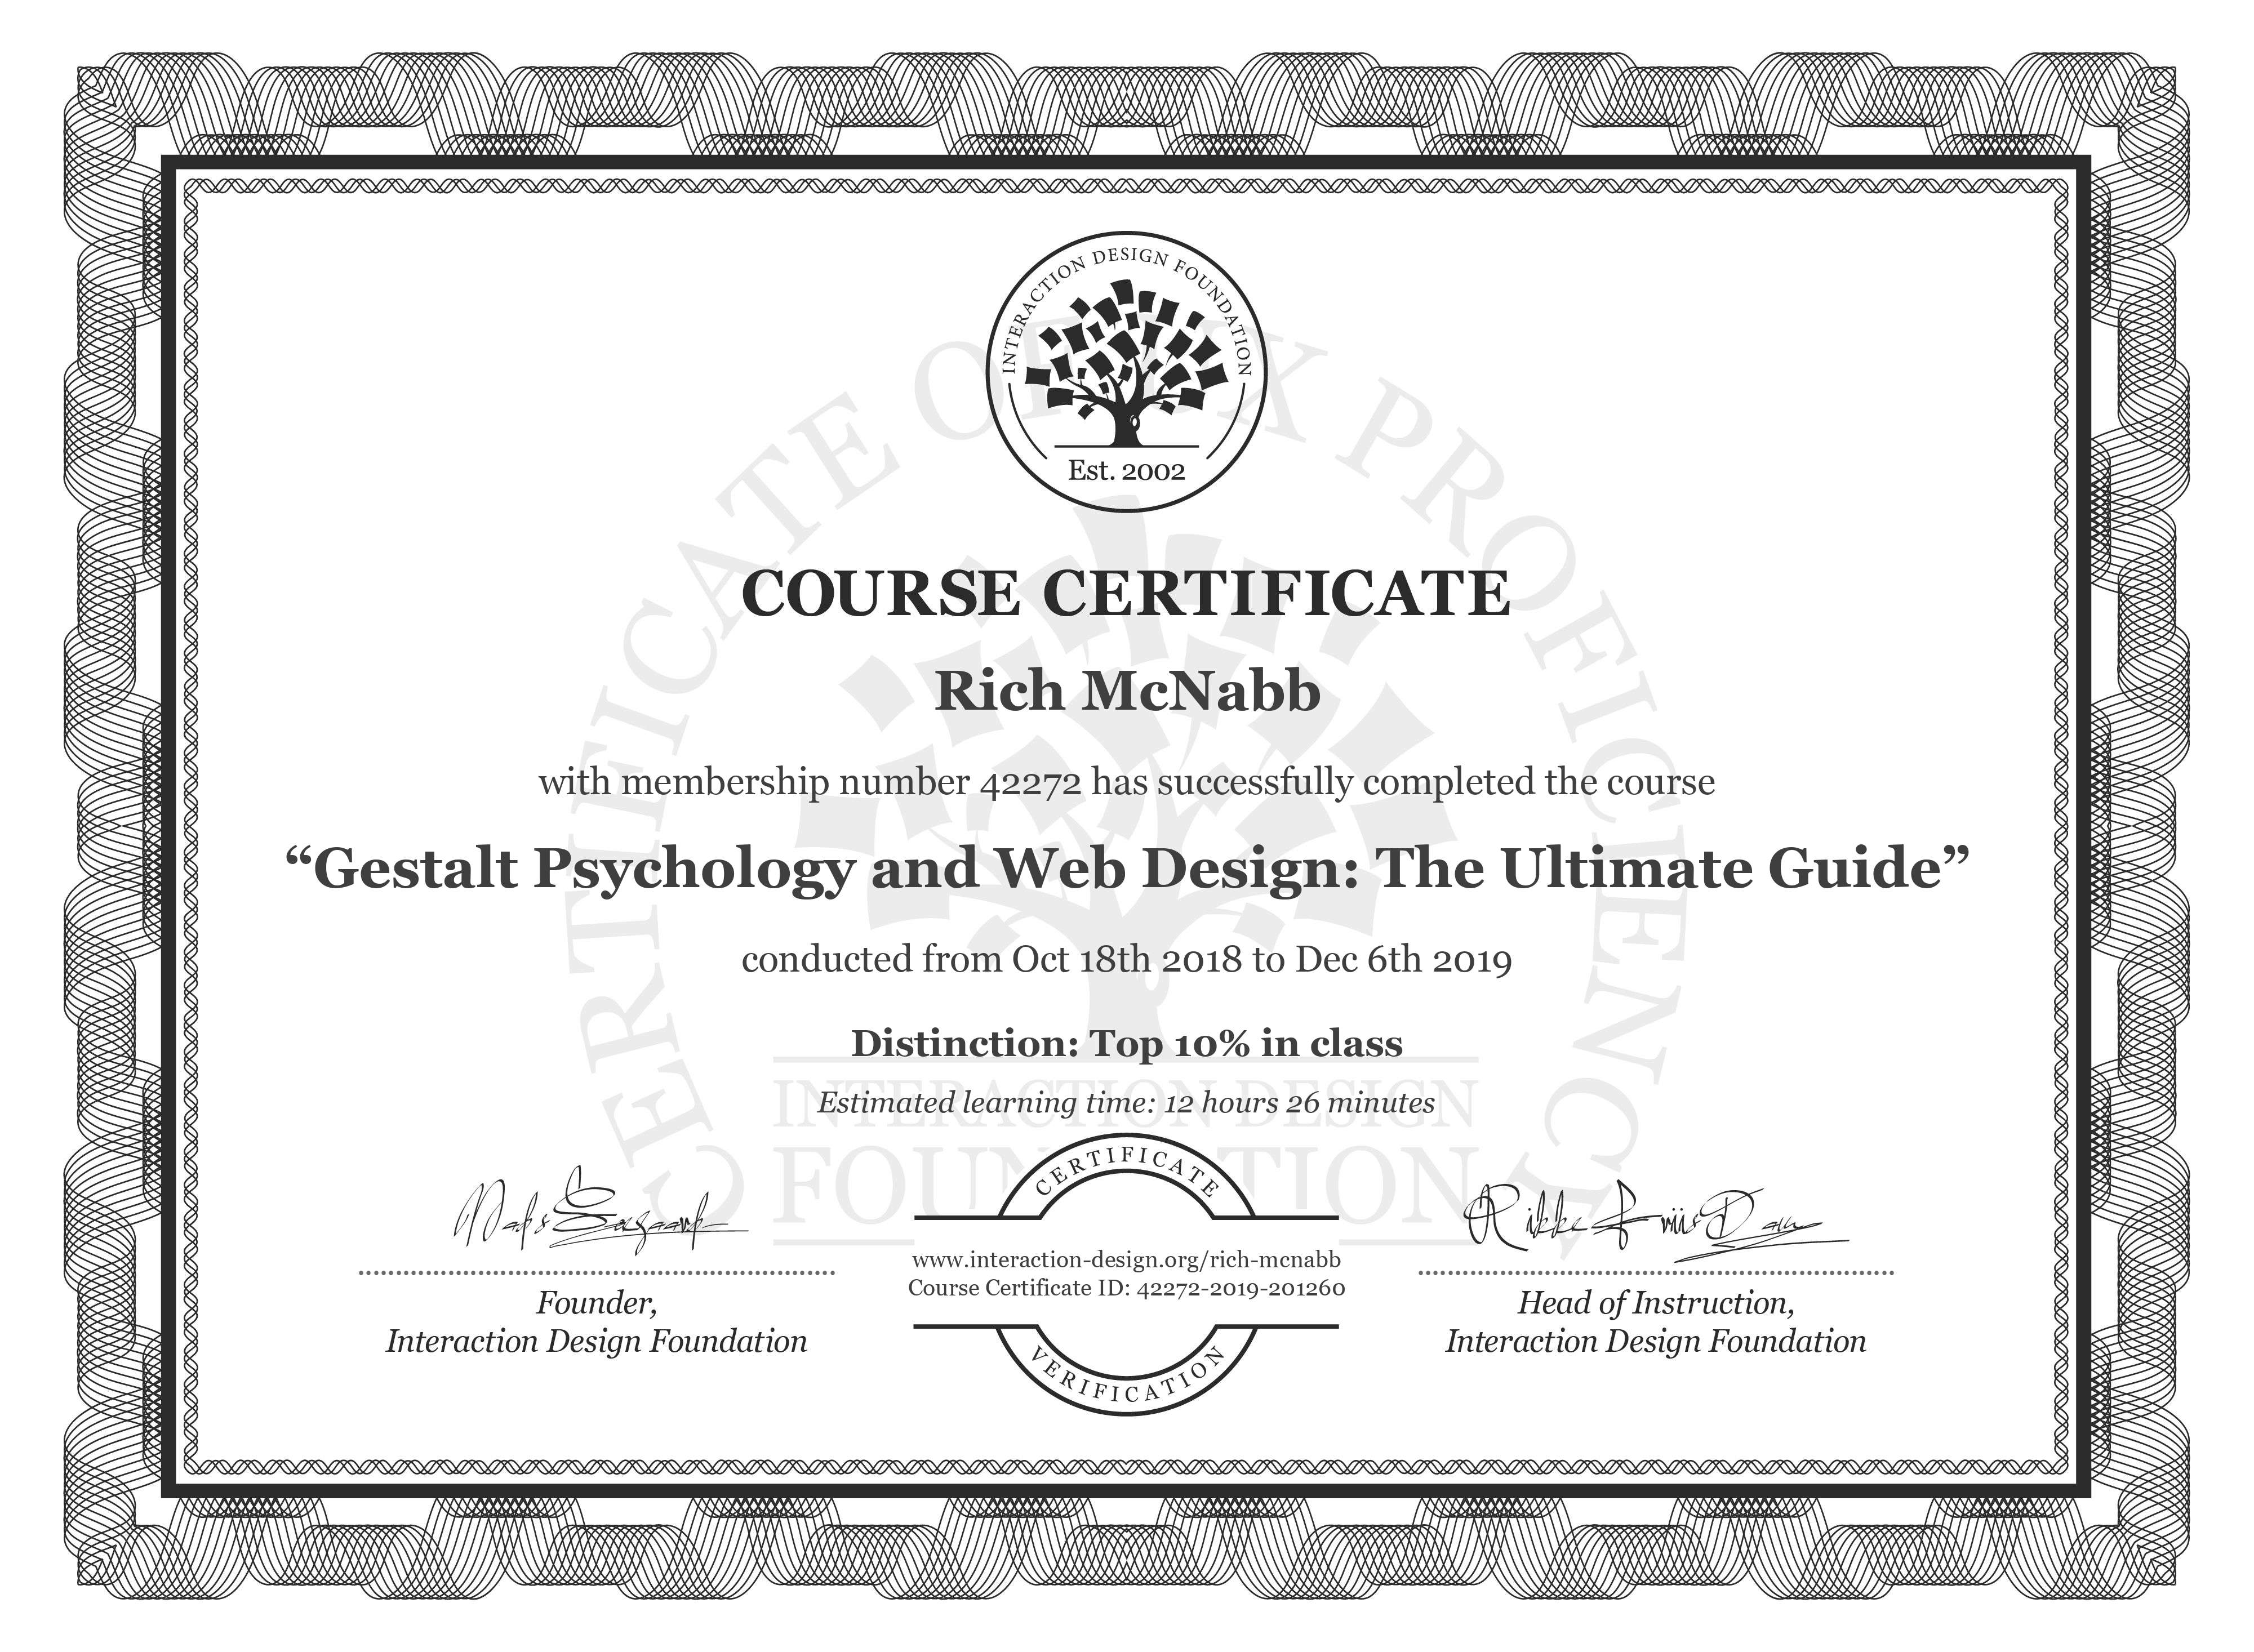 Rich McNabb's Course Certificate: Gestalt Psychology and Web Design: The Ultimate Guide